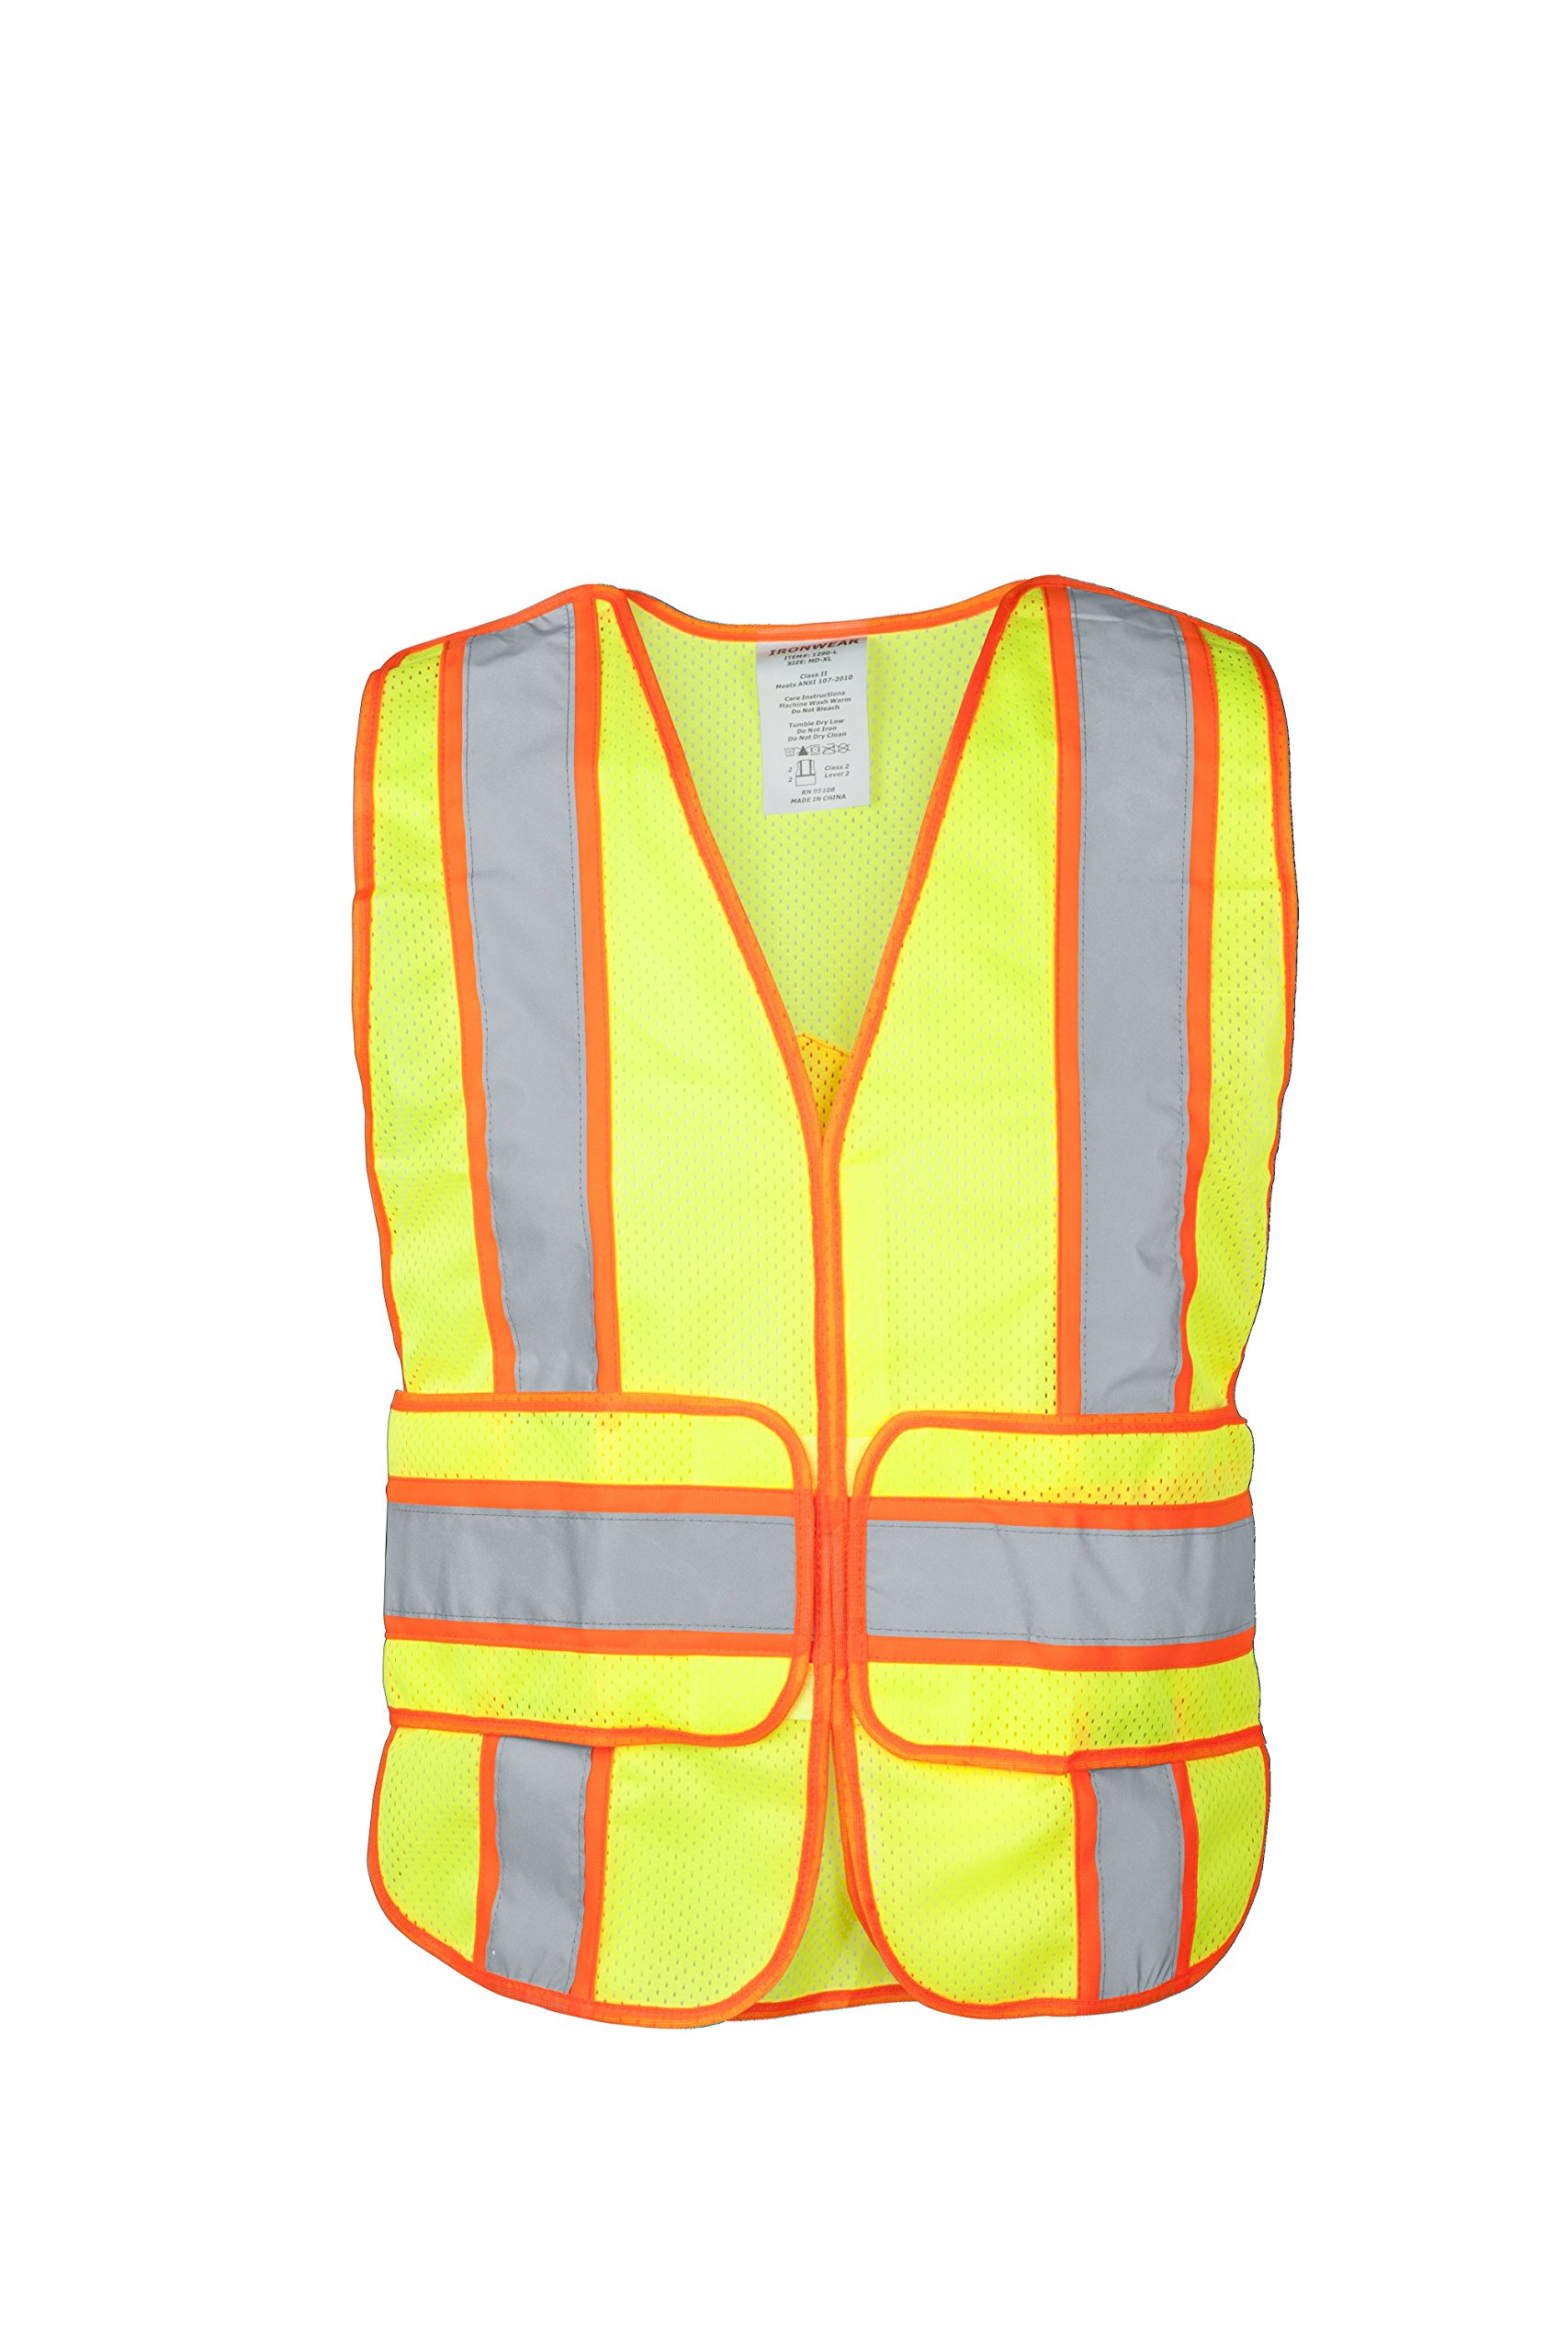 """Ironwear 1290FR-L-1-MD-XL ANSI Class 2 Flame Retardant Polyester Mesh Chevron SAFETY Vest with 2"""" Silver Reflective Tape Over Lime, Medium/X-Large"""